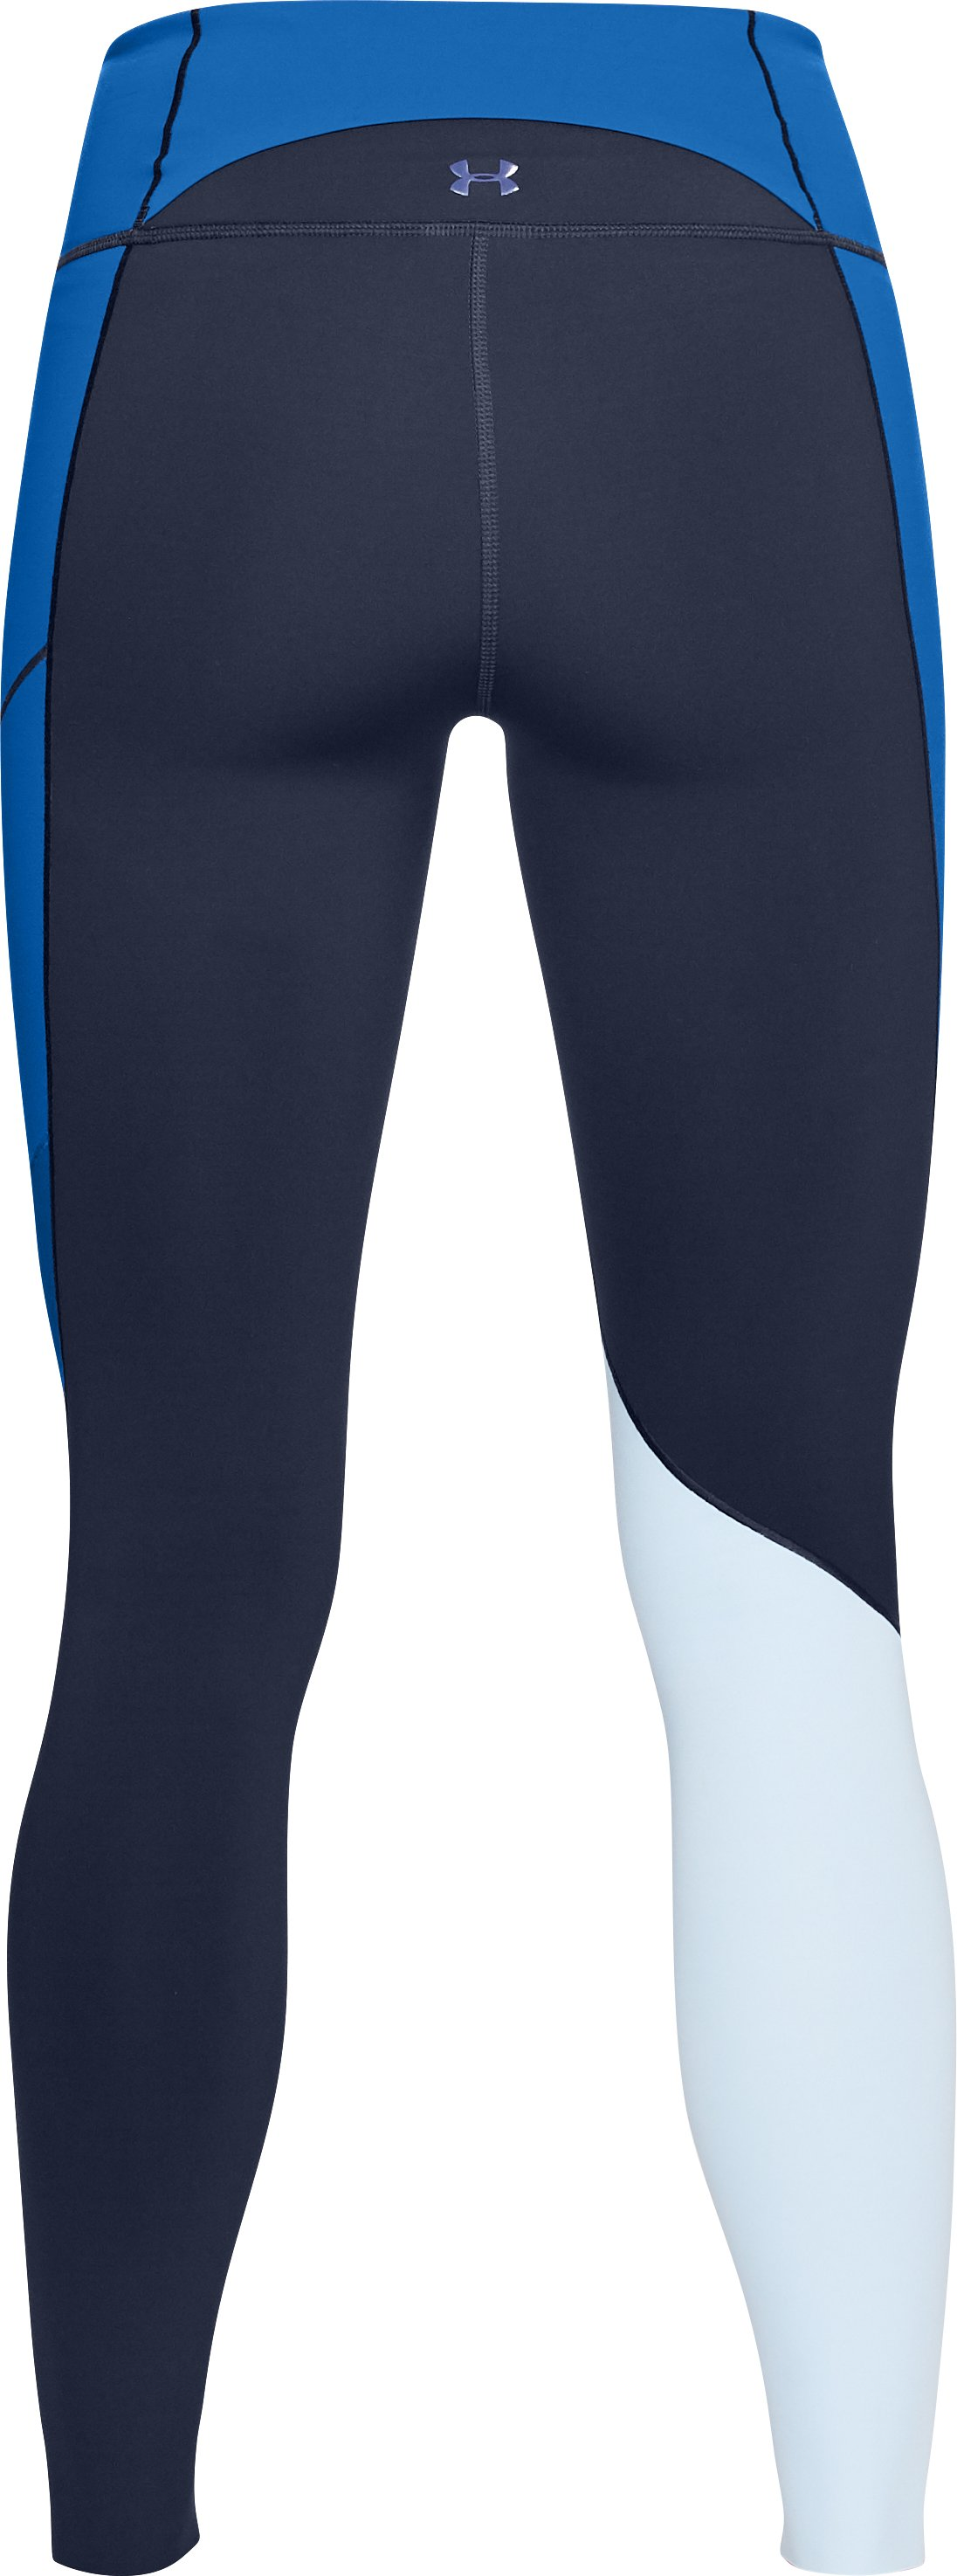 Women's UA Mirror BreatheLux Asym Hi-Rise Leggings, Midnight Navy